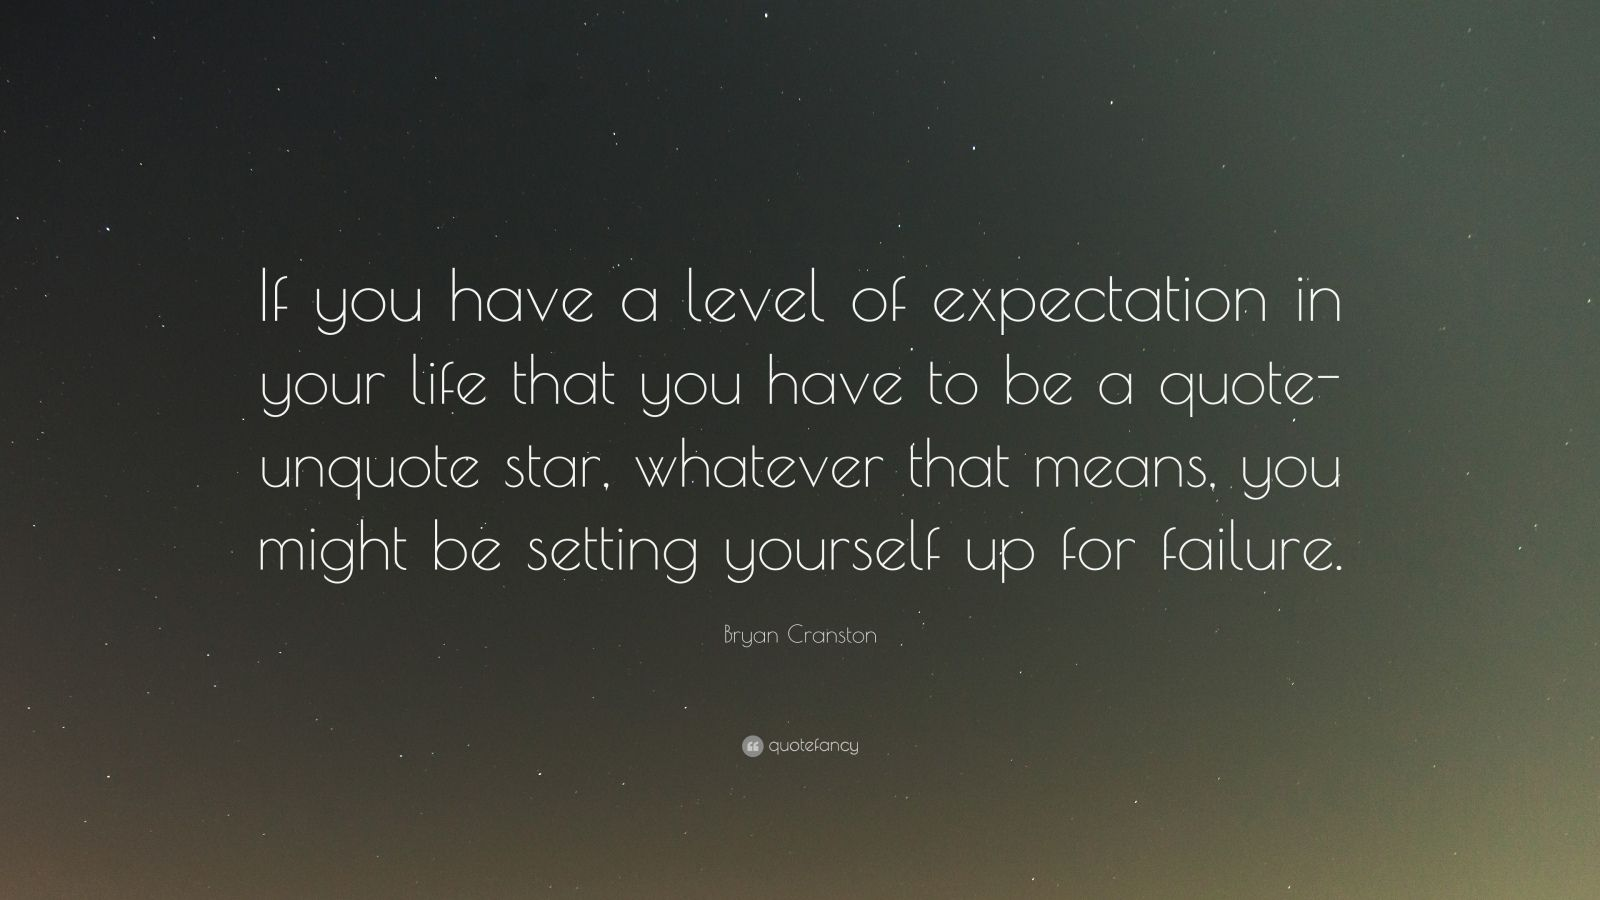 """Bryan Cranston Quote: """"If you have a level of expectation in your life that you have to be a quote-unquote star, whatever that means, you might be setting yourself up for failure."""""""